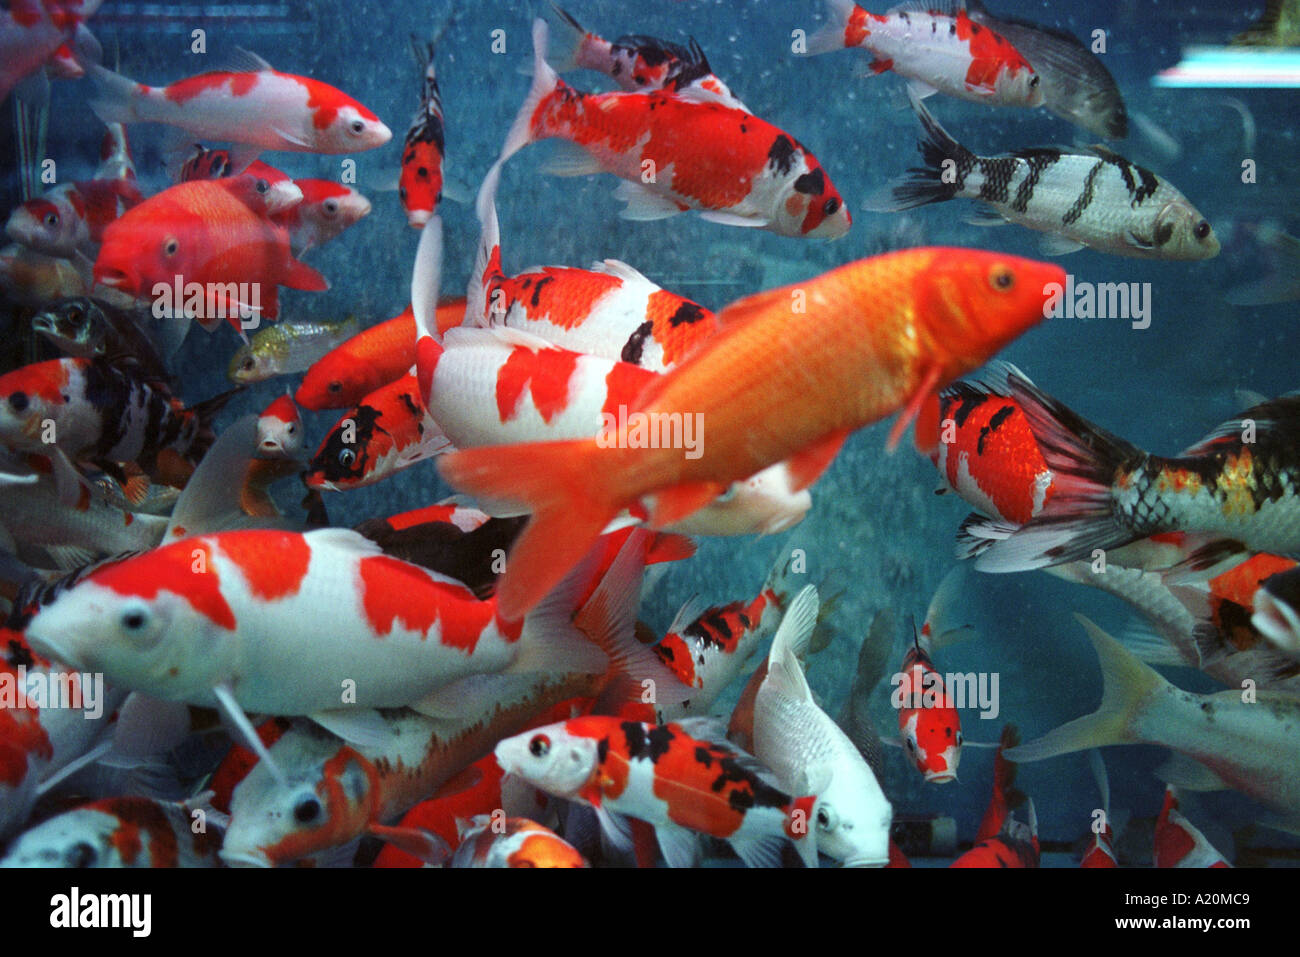 Koi carp fish charms of financial prosperity for sale in for Koi fish for sale